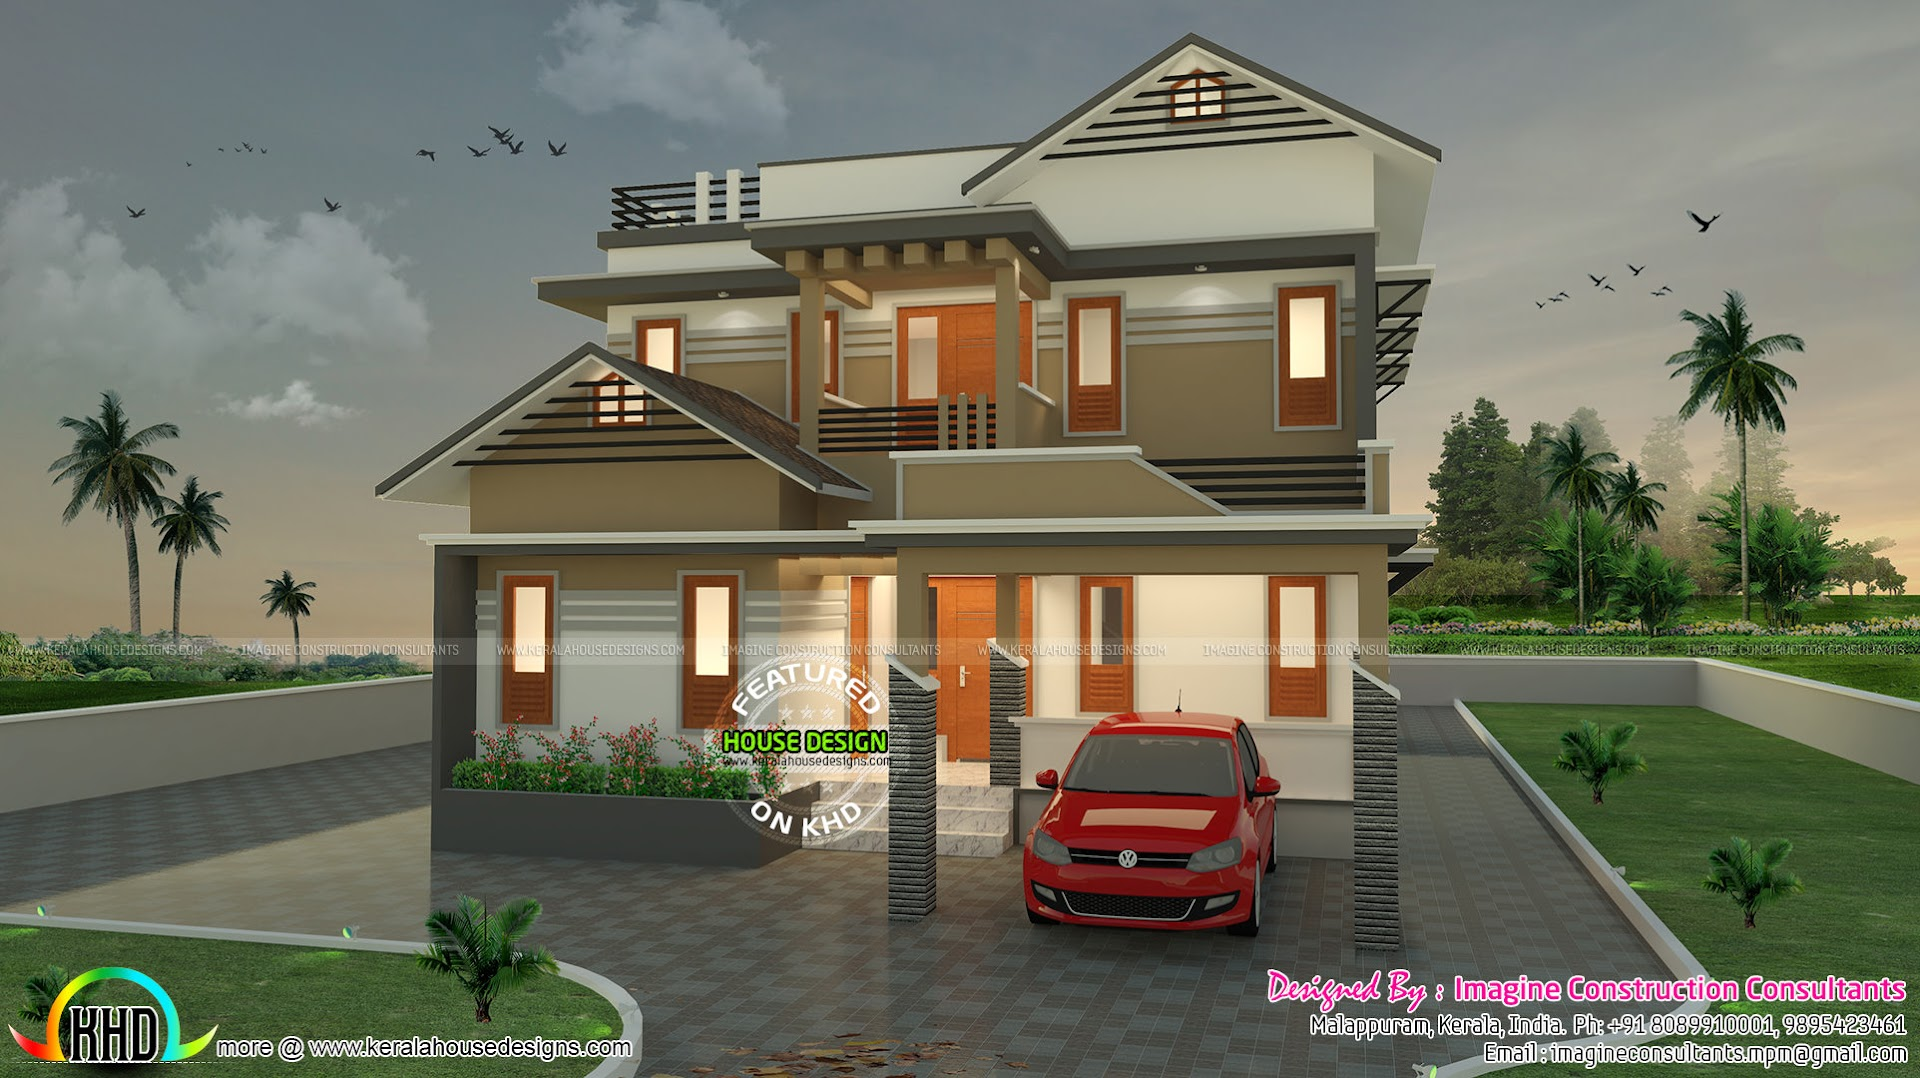 1900 sq ft modern sloping roof house architecture kerala for 1900 architecture houses